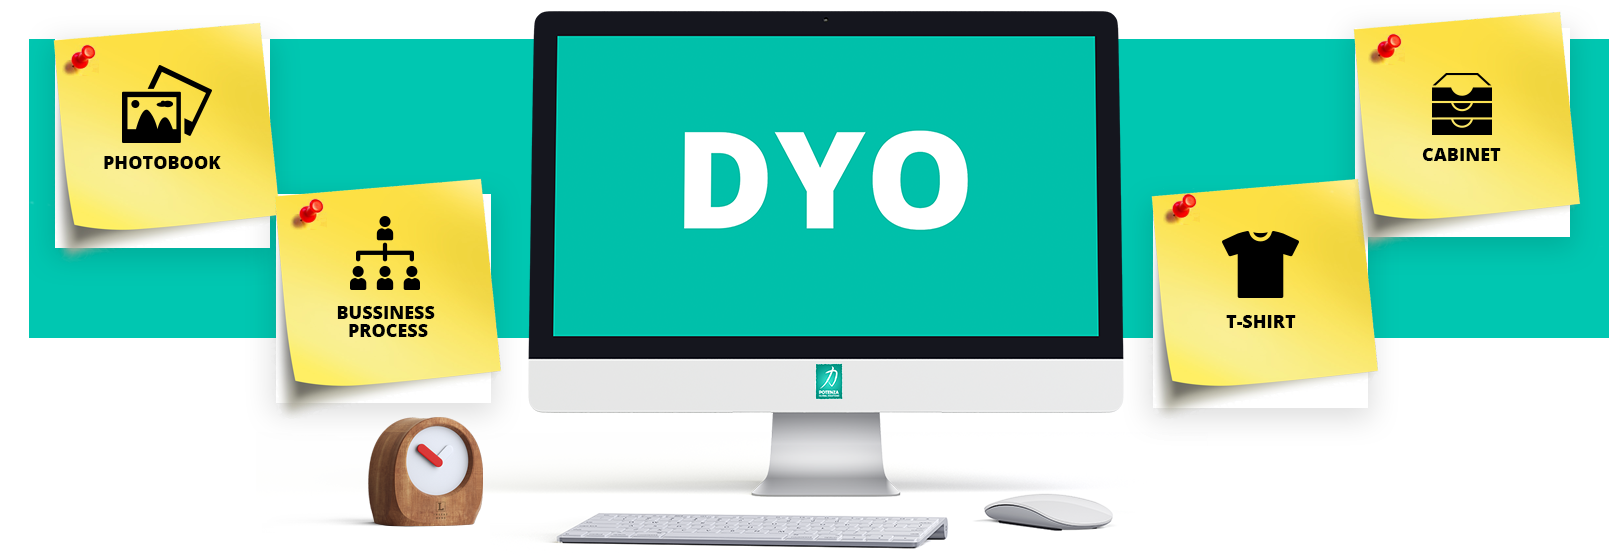 You own application dyo. Tool clipart design technology